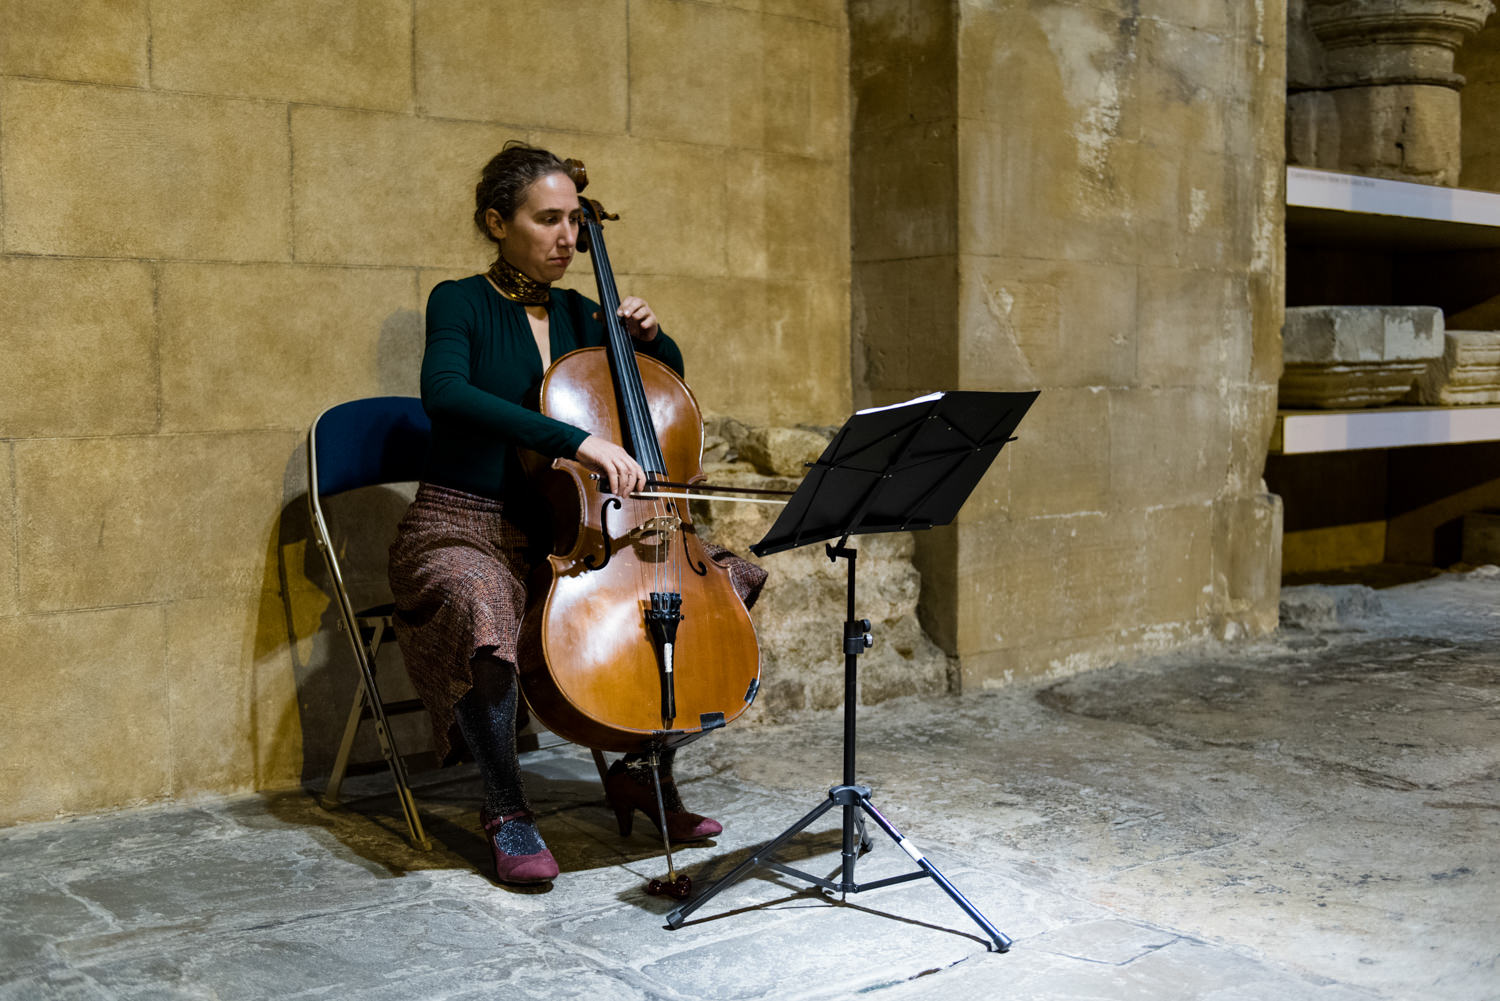 Cellist plays at Roman Baths wedding Somerset